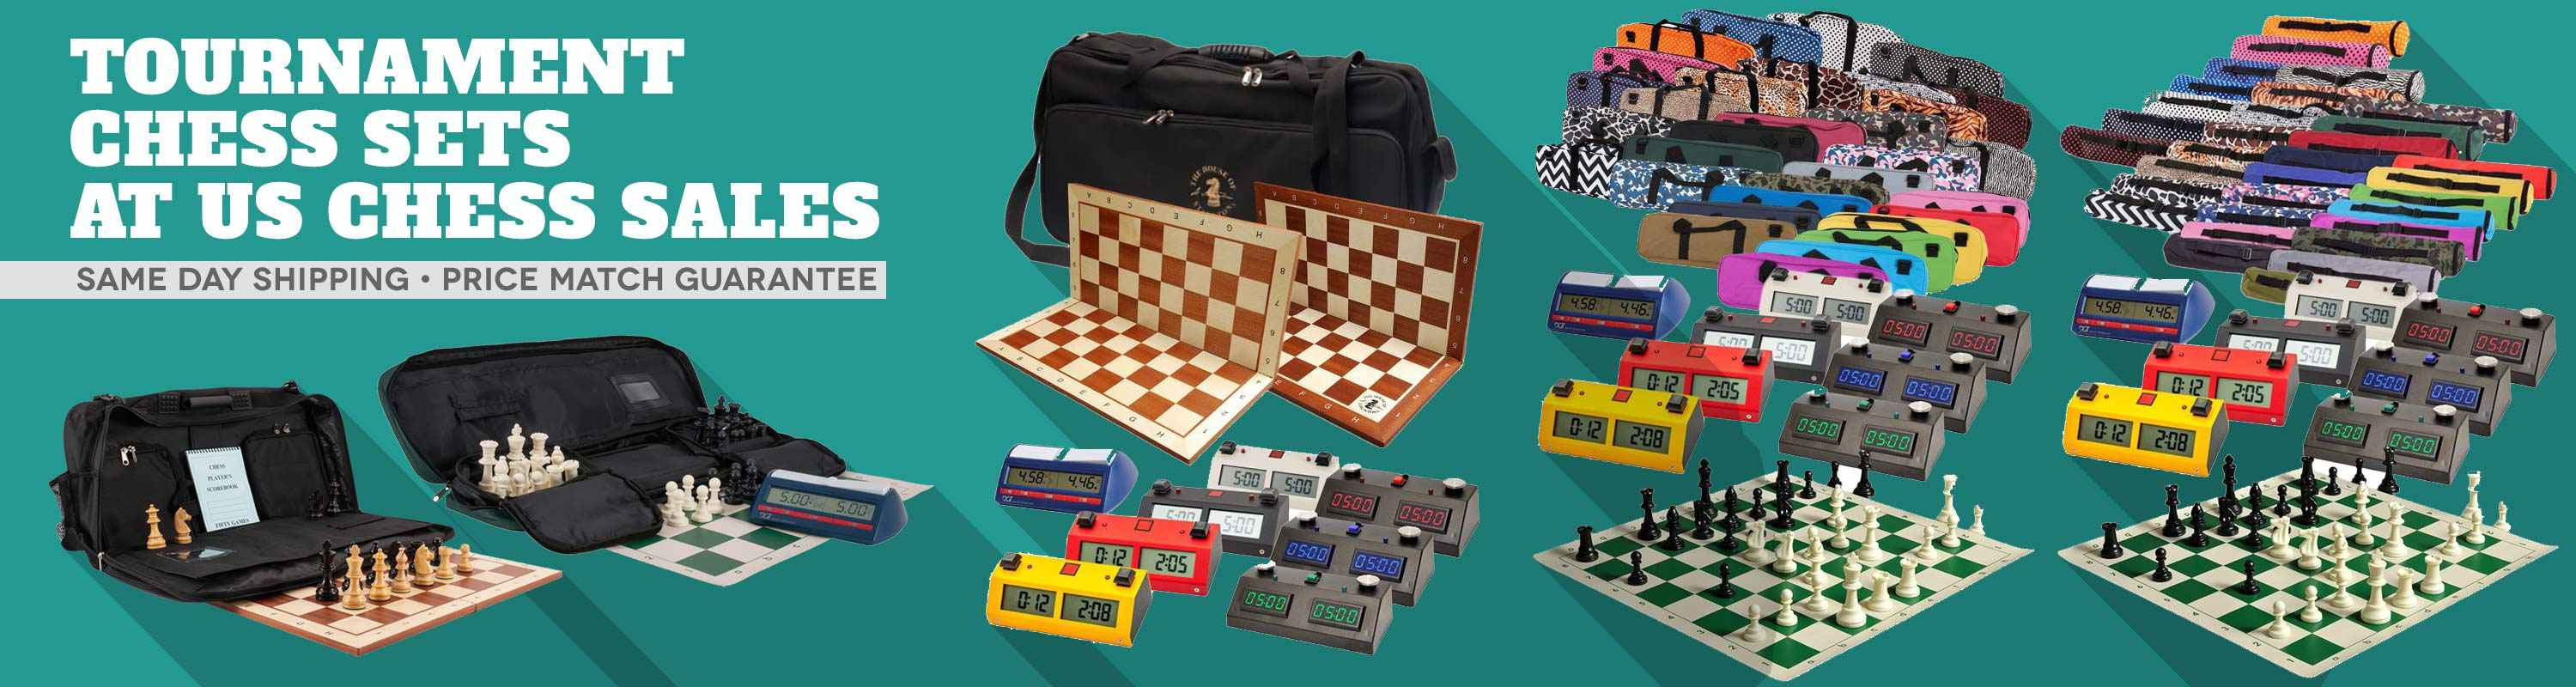 Tournament Chess Sets at US Chess Sales